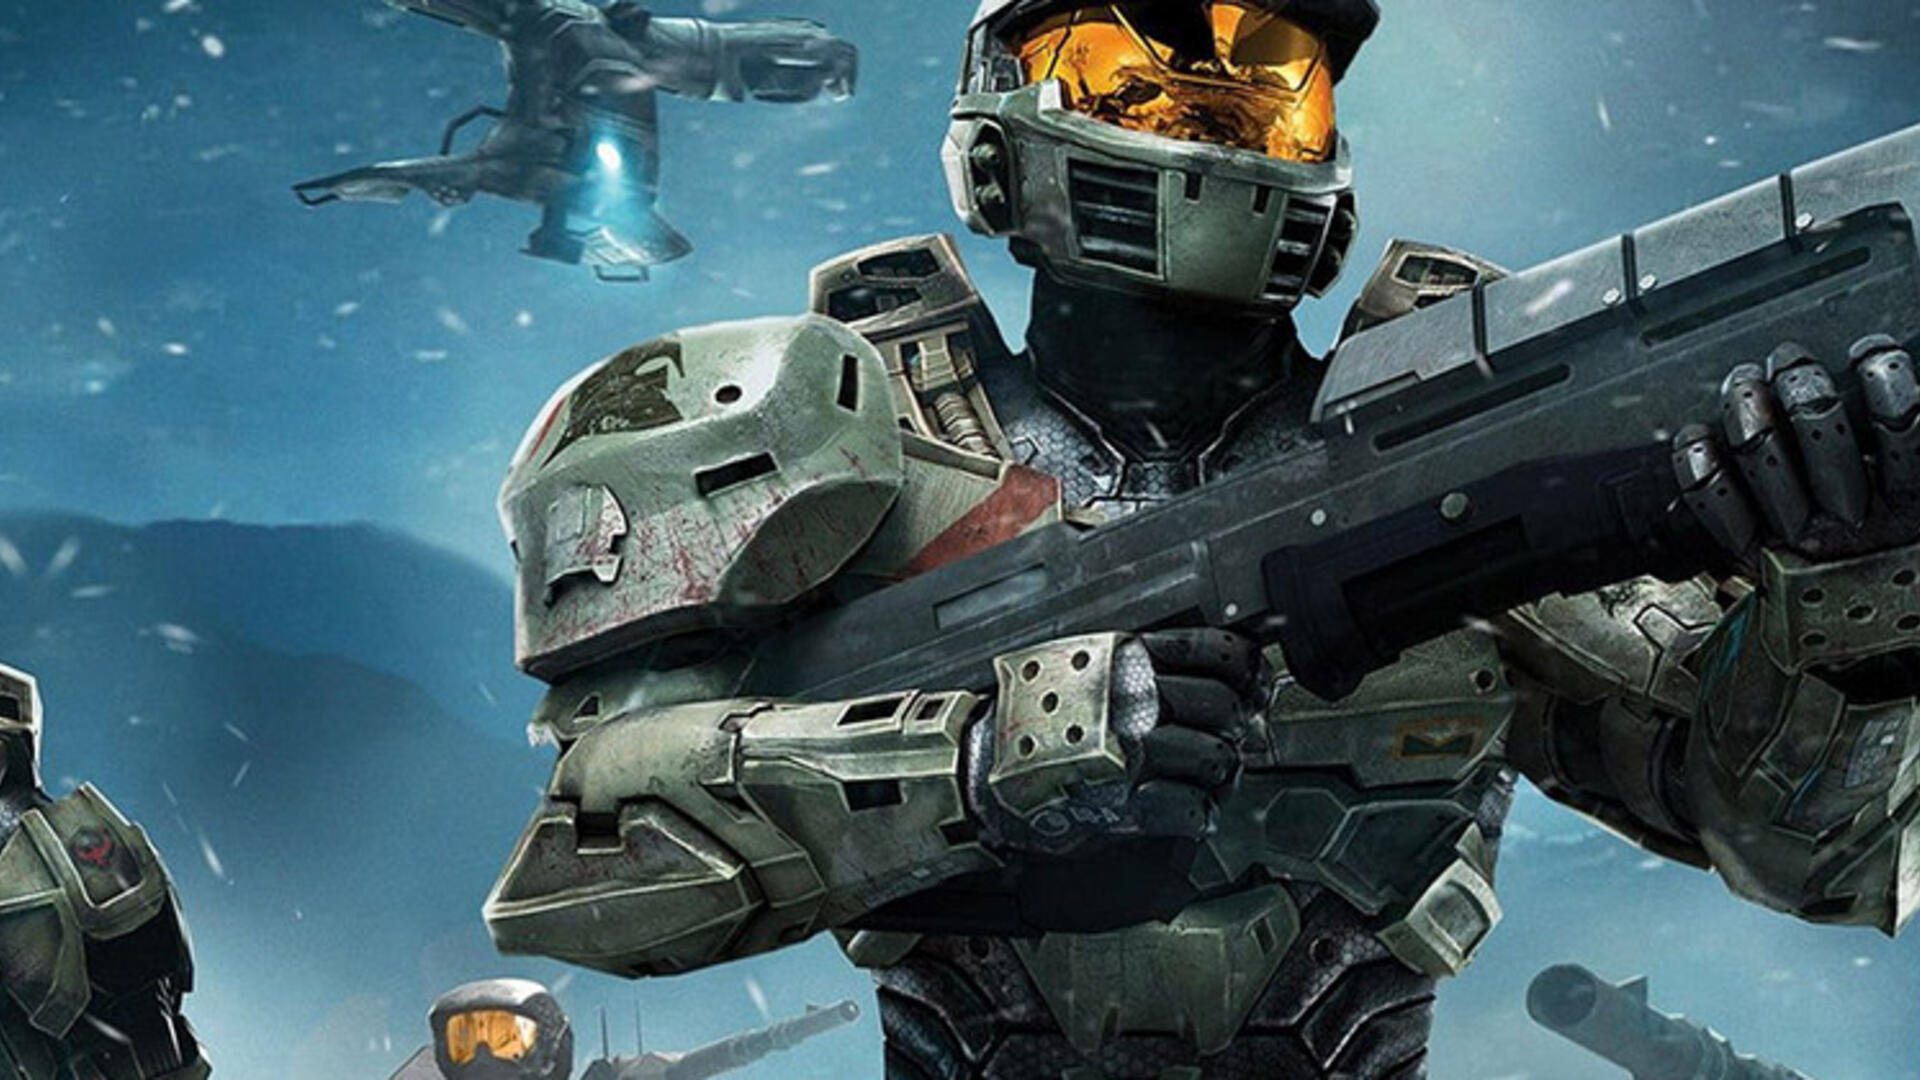 E3 2014: Will Microsoft's Halo Gambit Pay Off?